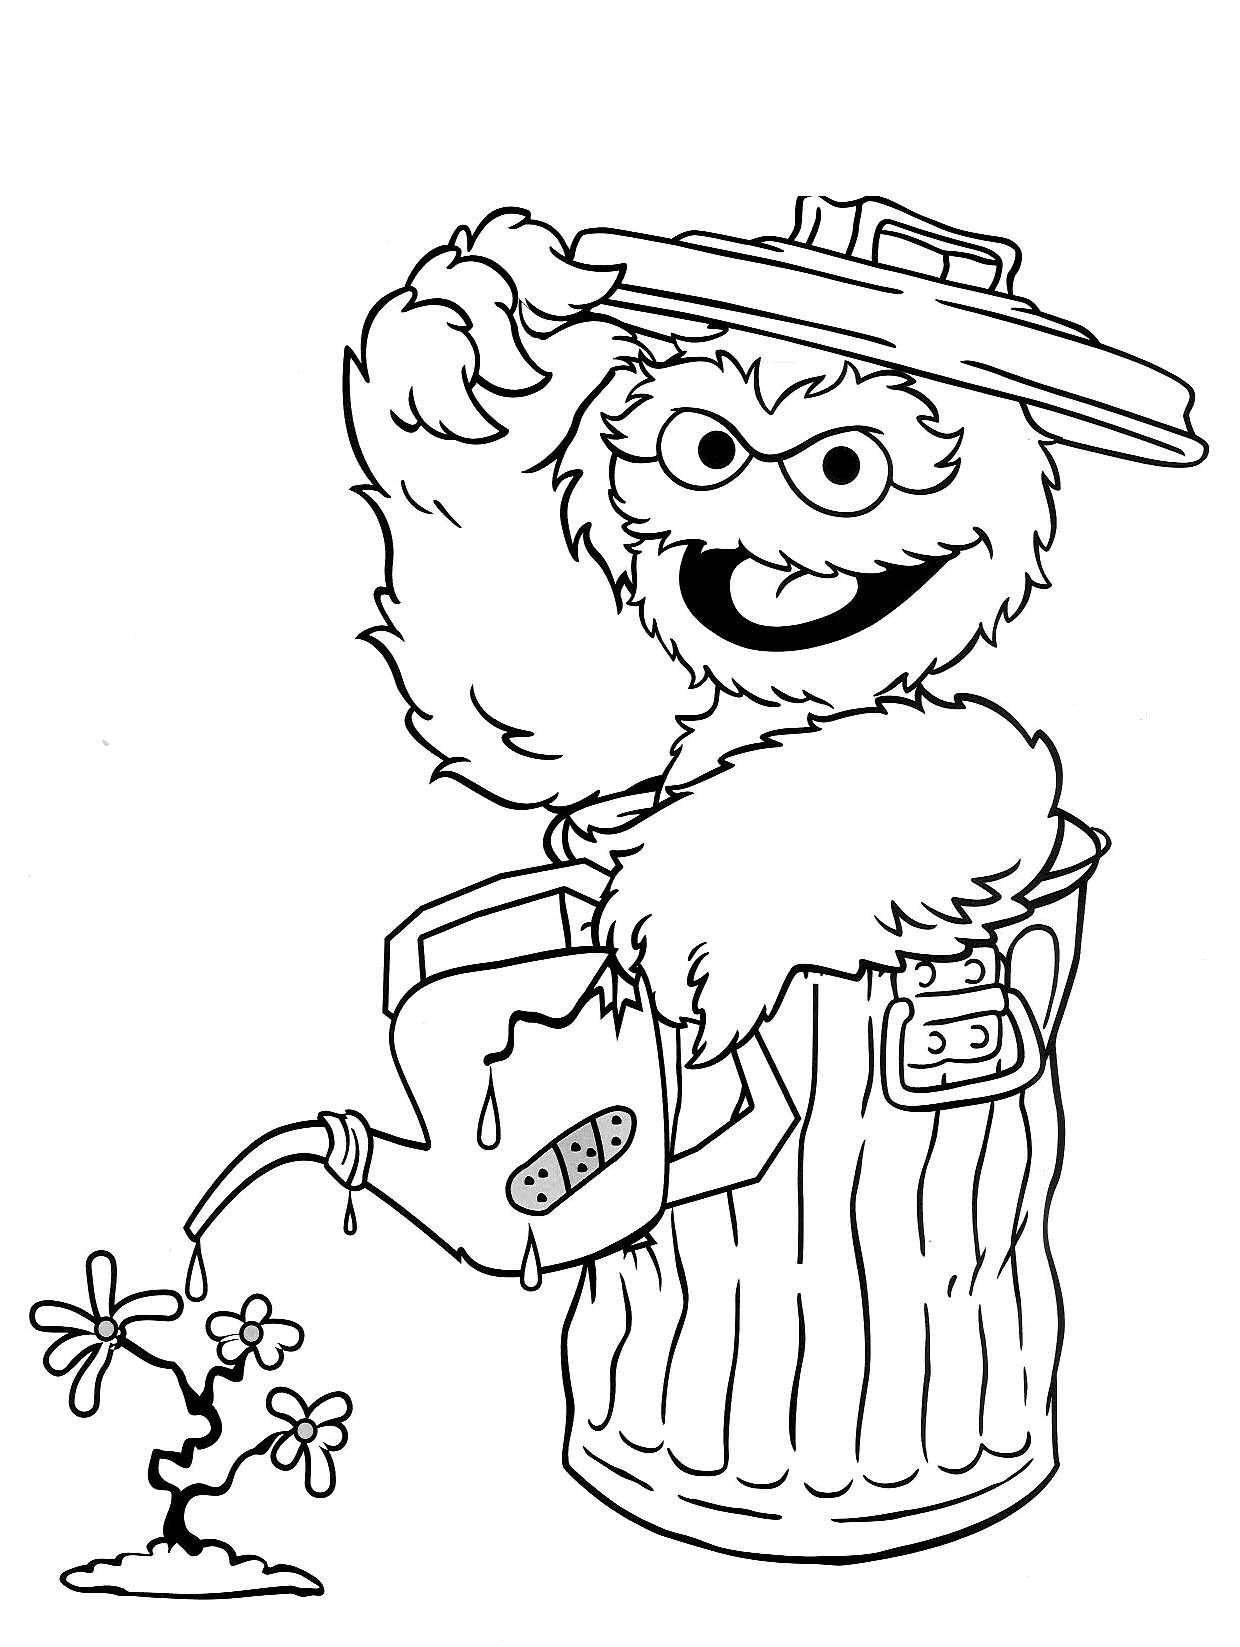 Christmas Coloring Pages For Older Kids Awesome Christmas